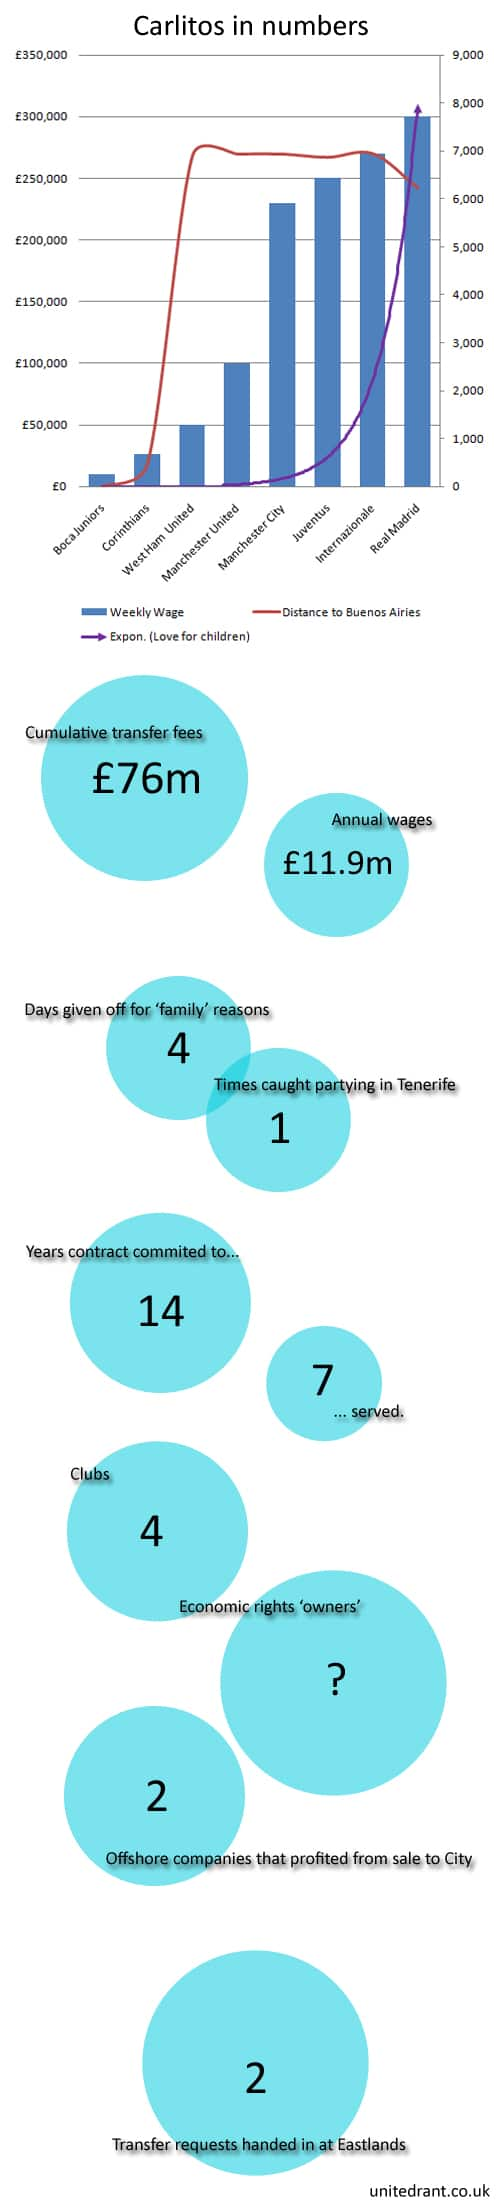 Carlos Tevez in numbers